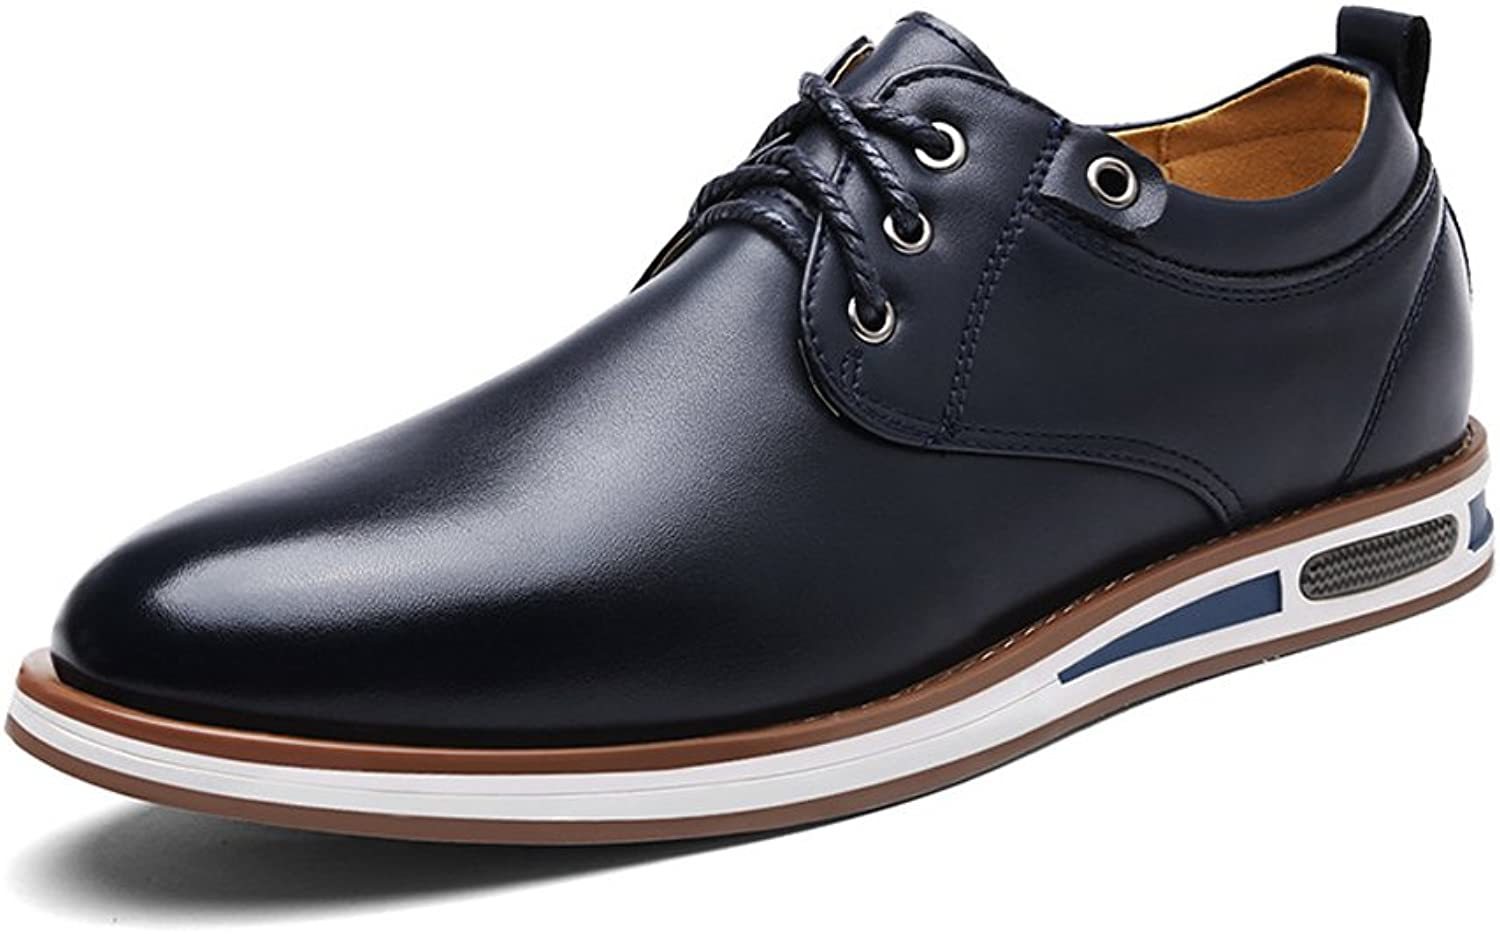 shoes Modern Men's Round Toe shoes Matte PU Leather Upper Lace Up Flat Sole Breathable Lined Oxfords Leather shoes